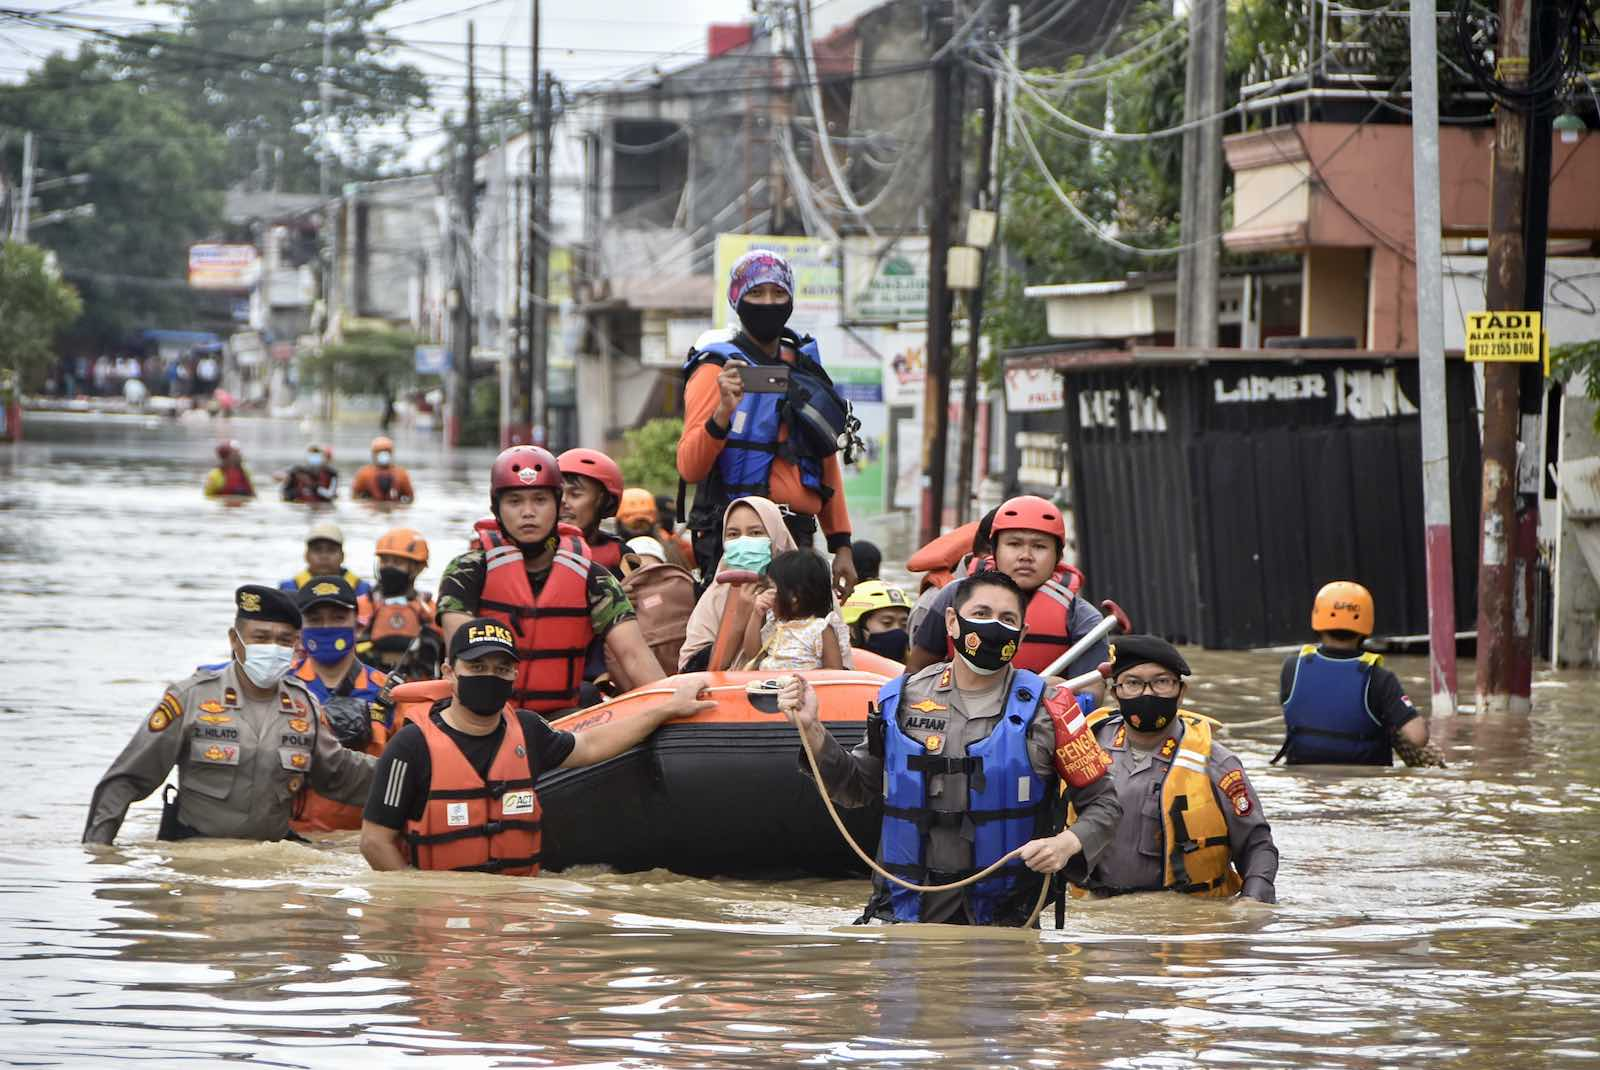 Rescuers evacuate residents from their flooded homes in Bekasi, Indonesia, 19 February 2021 (Rezas/AFP via Getty Images)